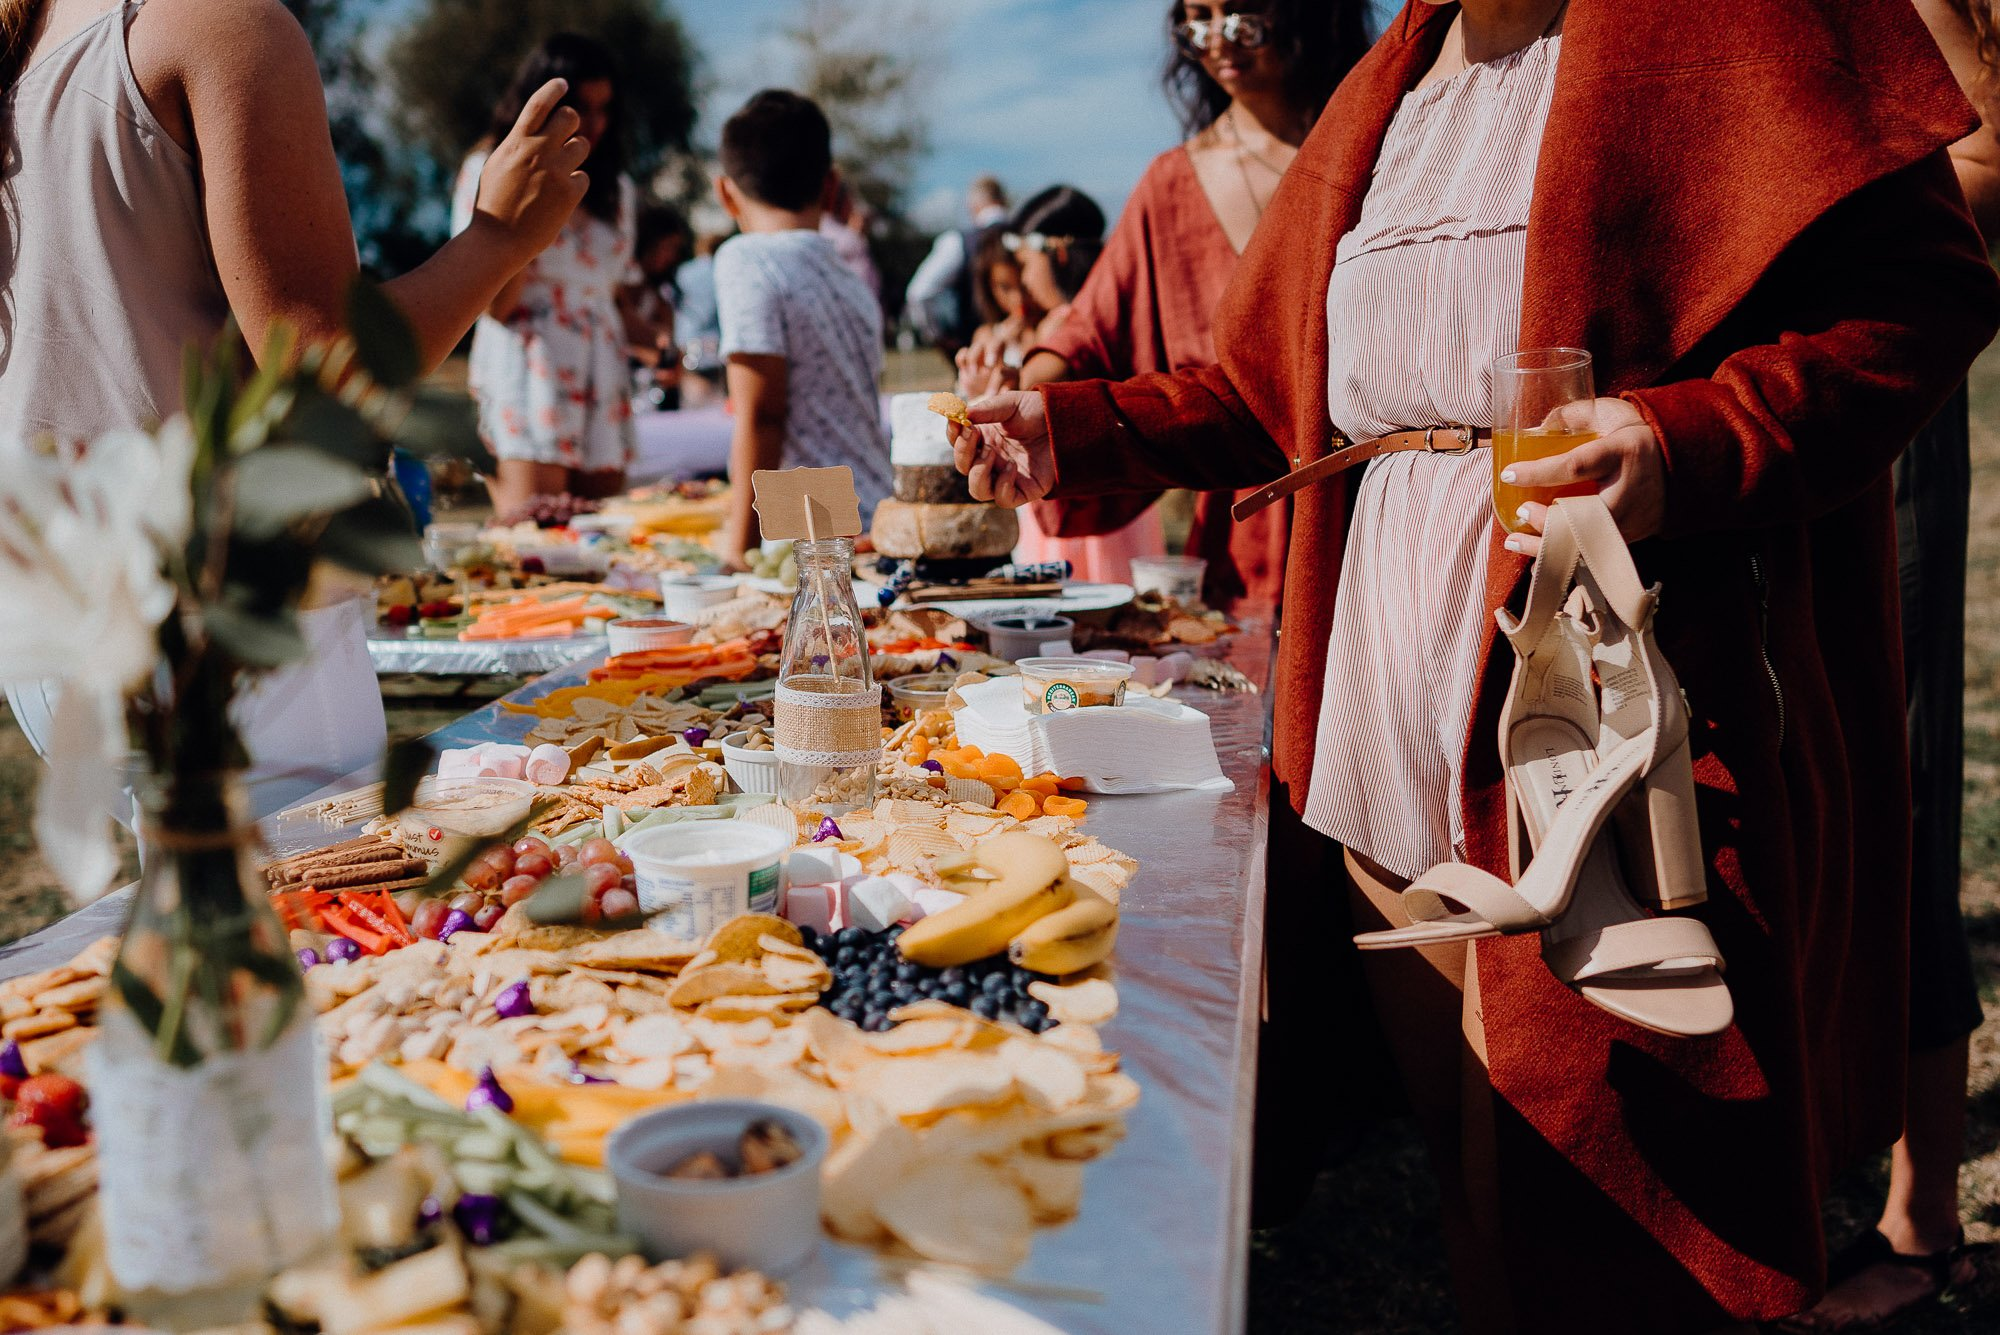 Wedding Photography Of Grazing Table Ideas 028. A more basic grazing table with plenty of food all spread out.